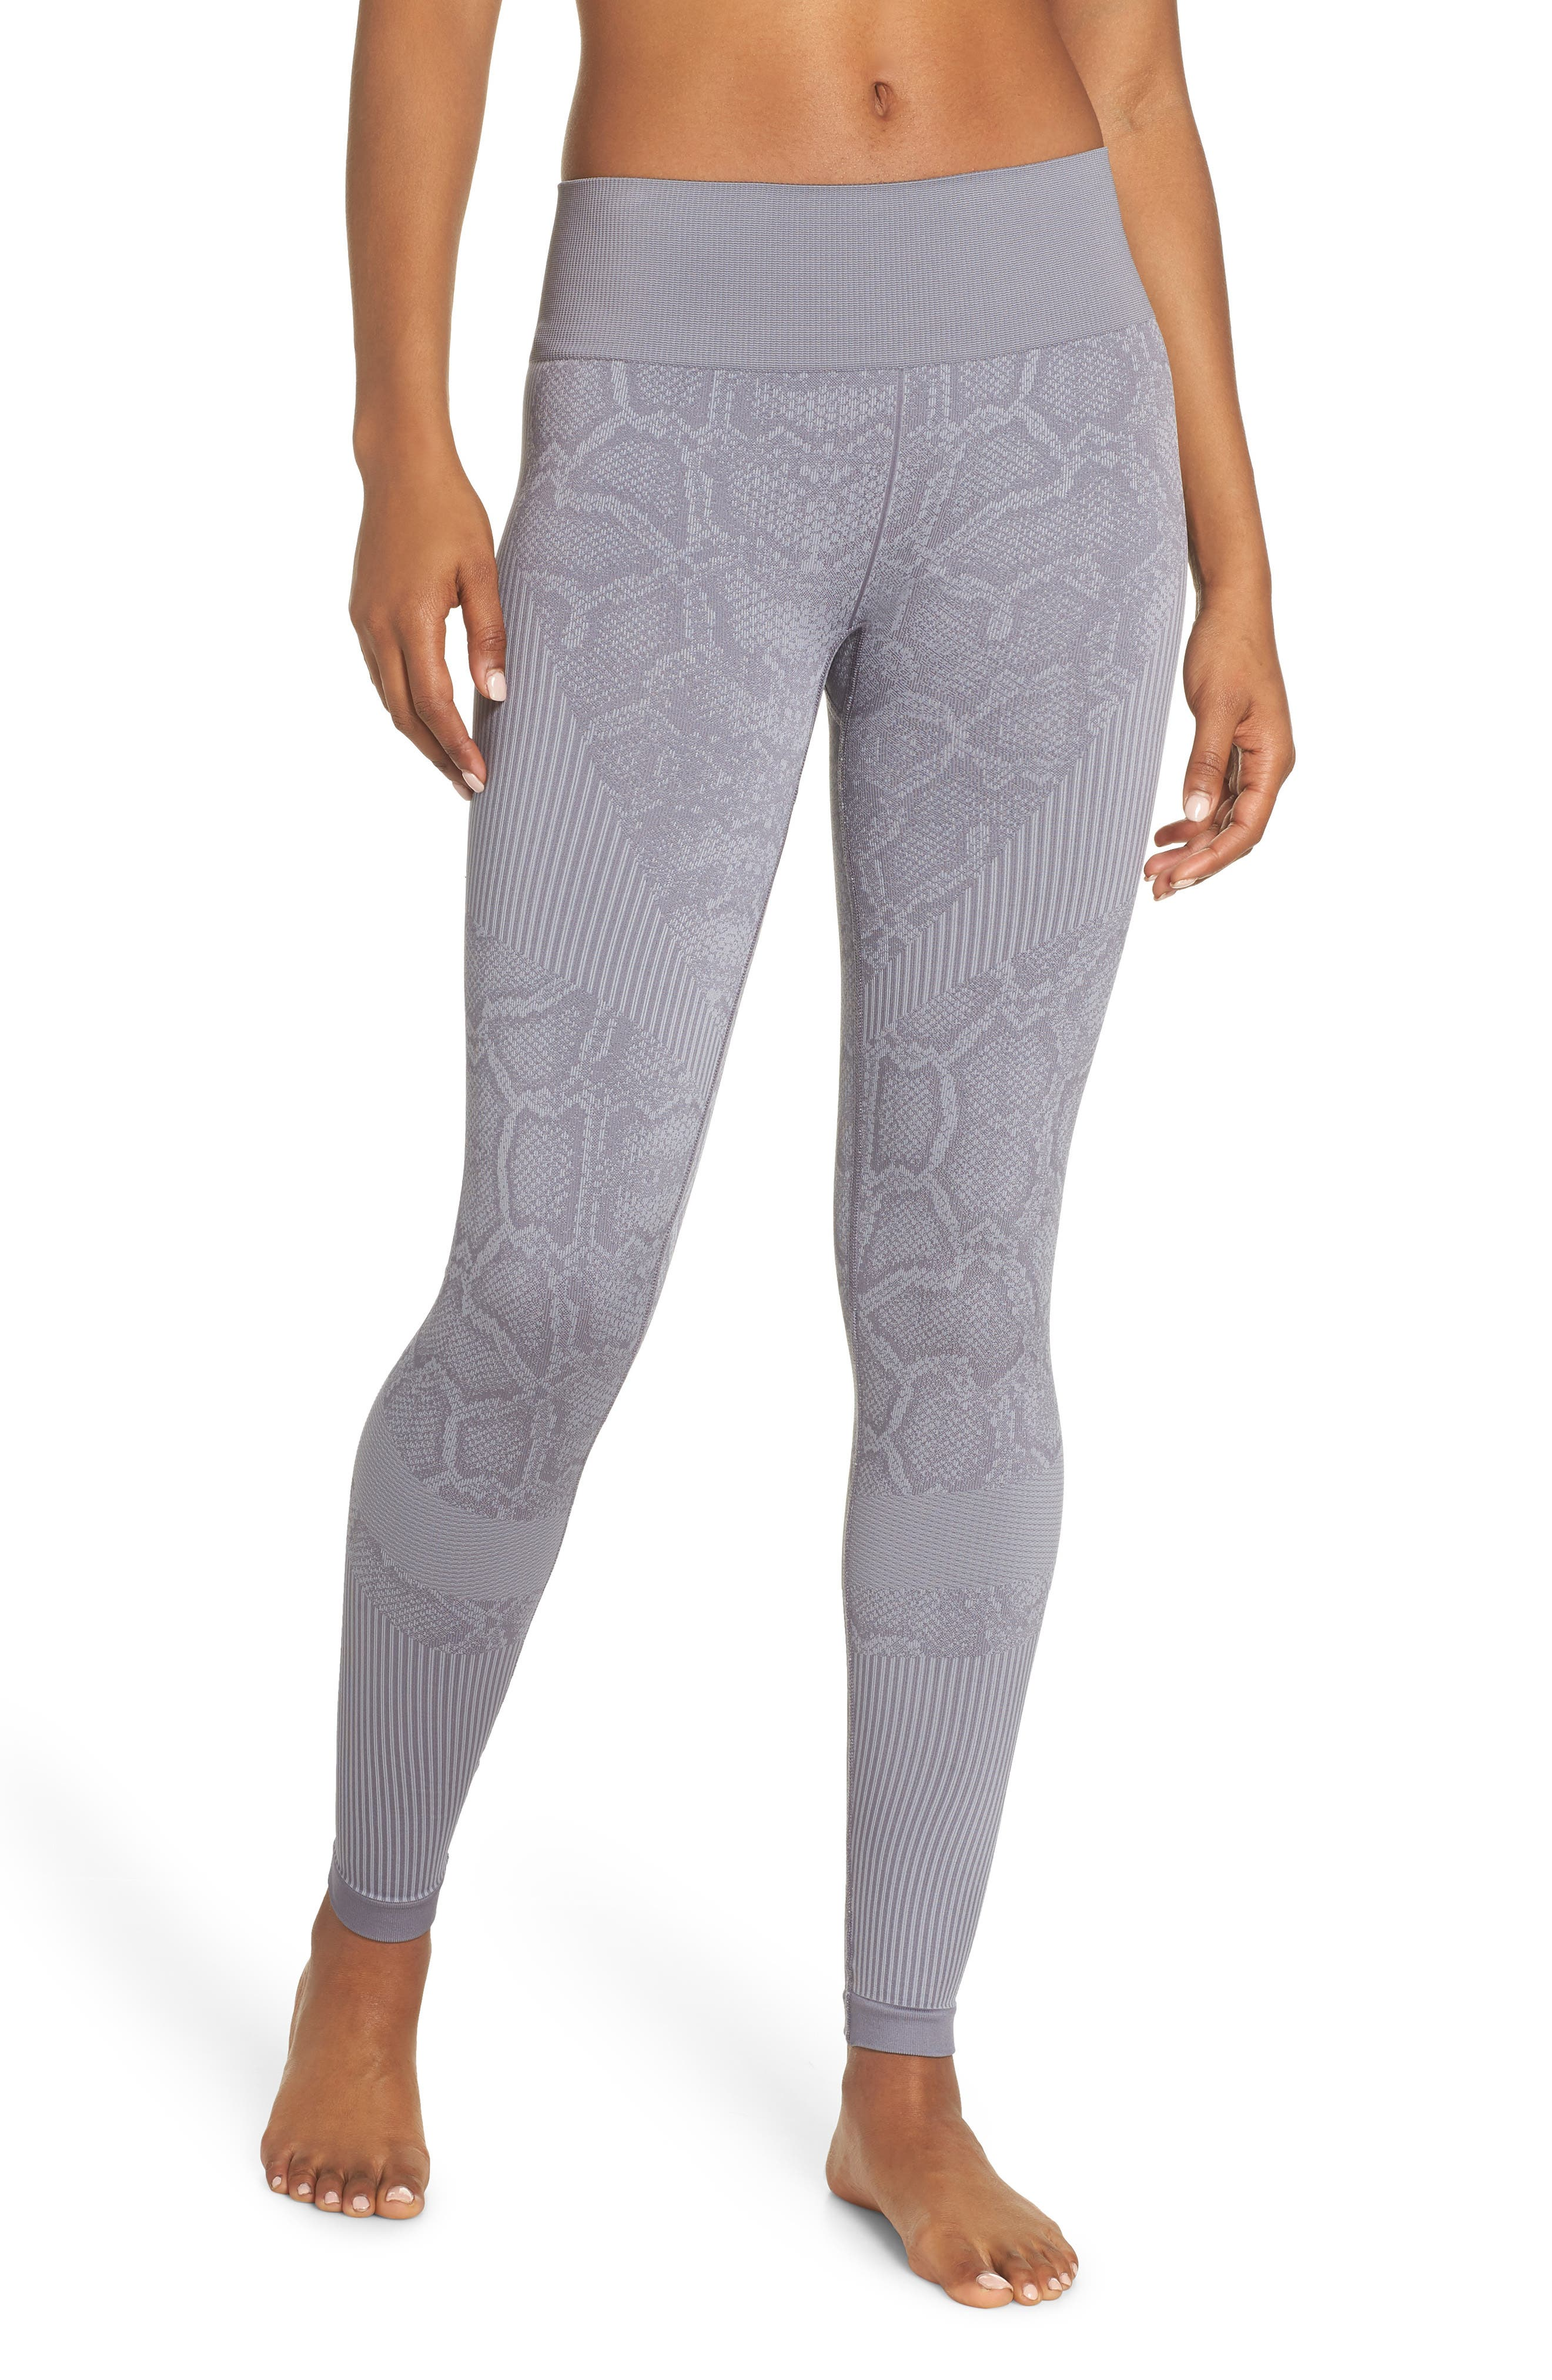 Quincy Seamless Leggings,                             Main thumbnail 1, color,                             GREY SNAKE